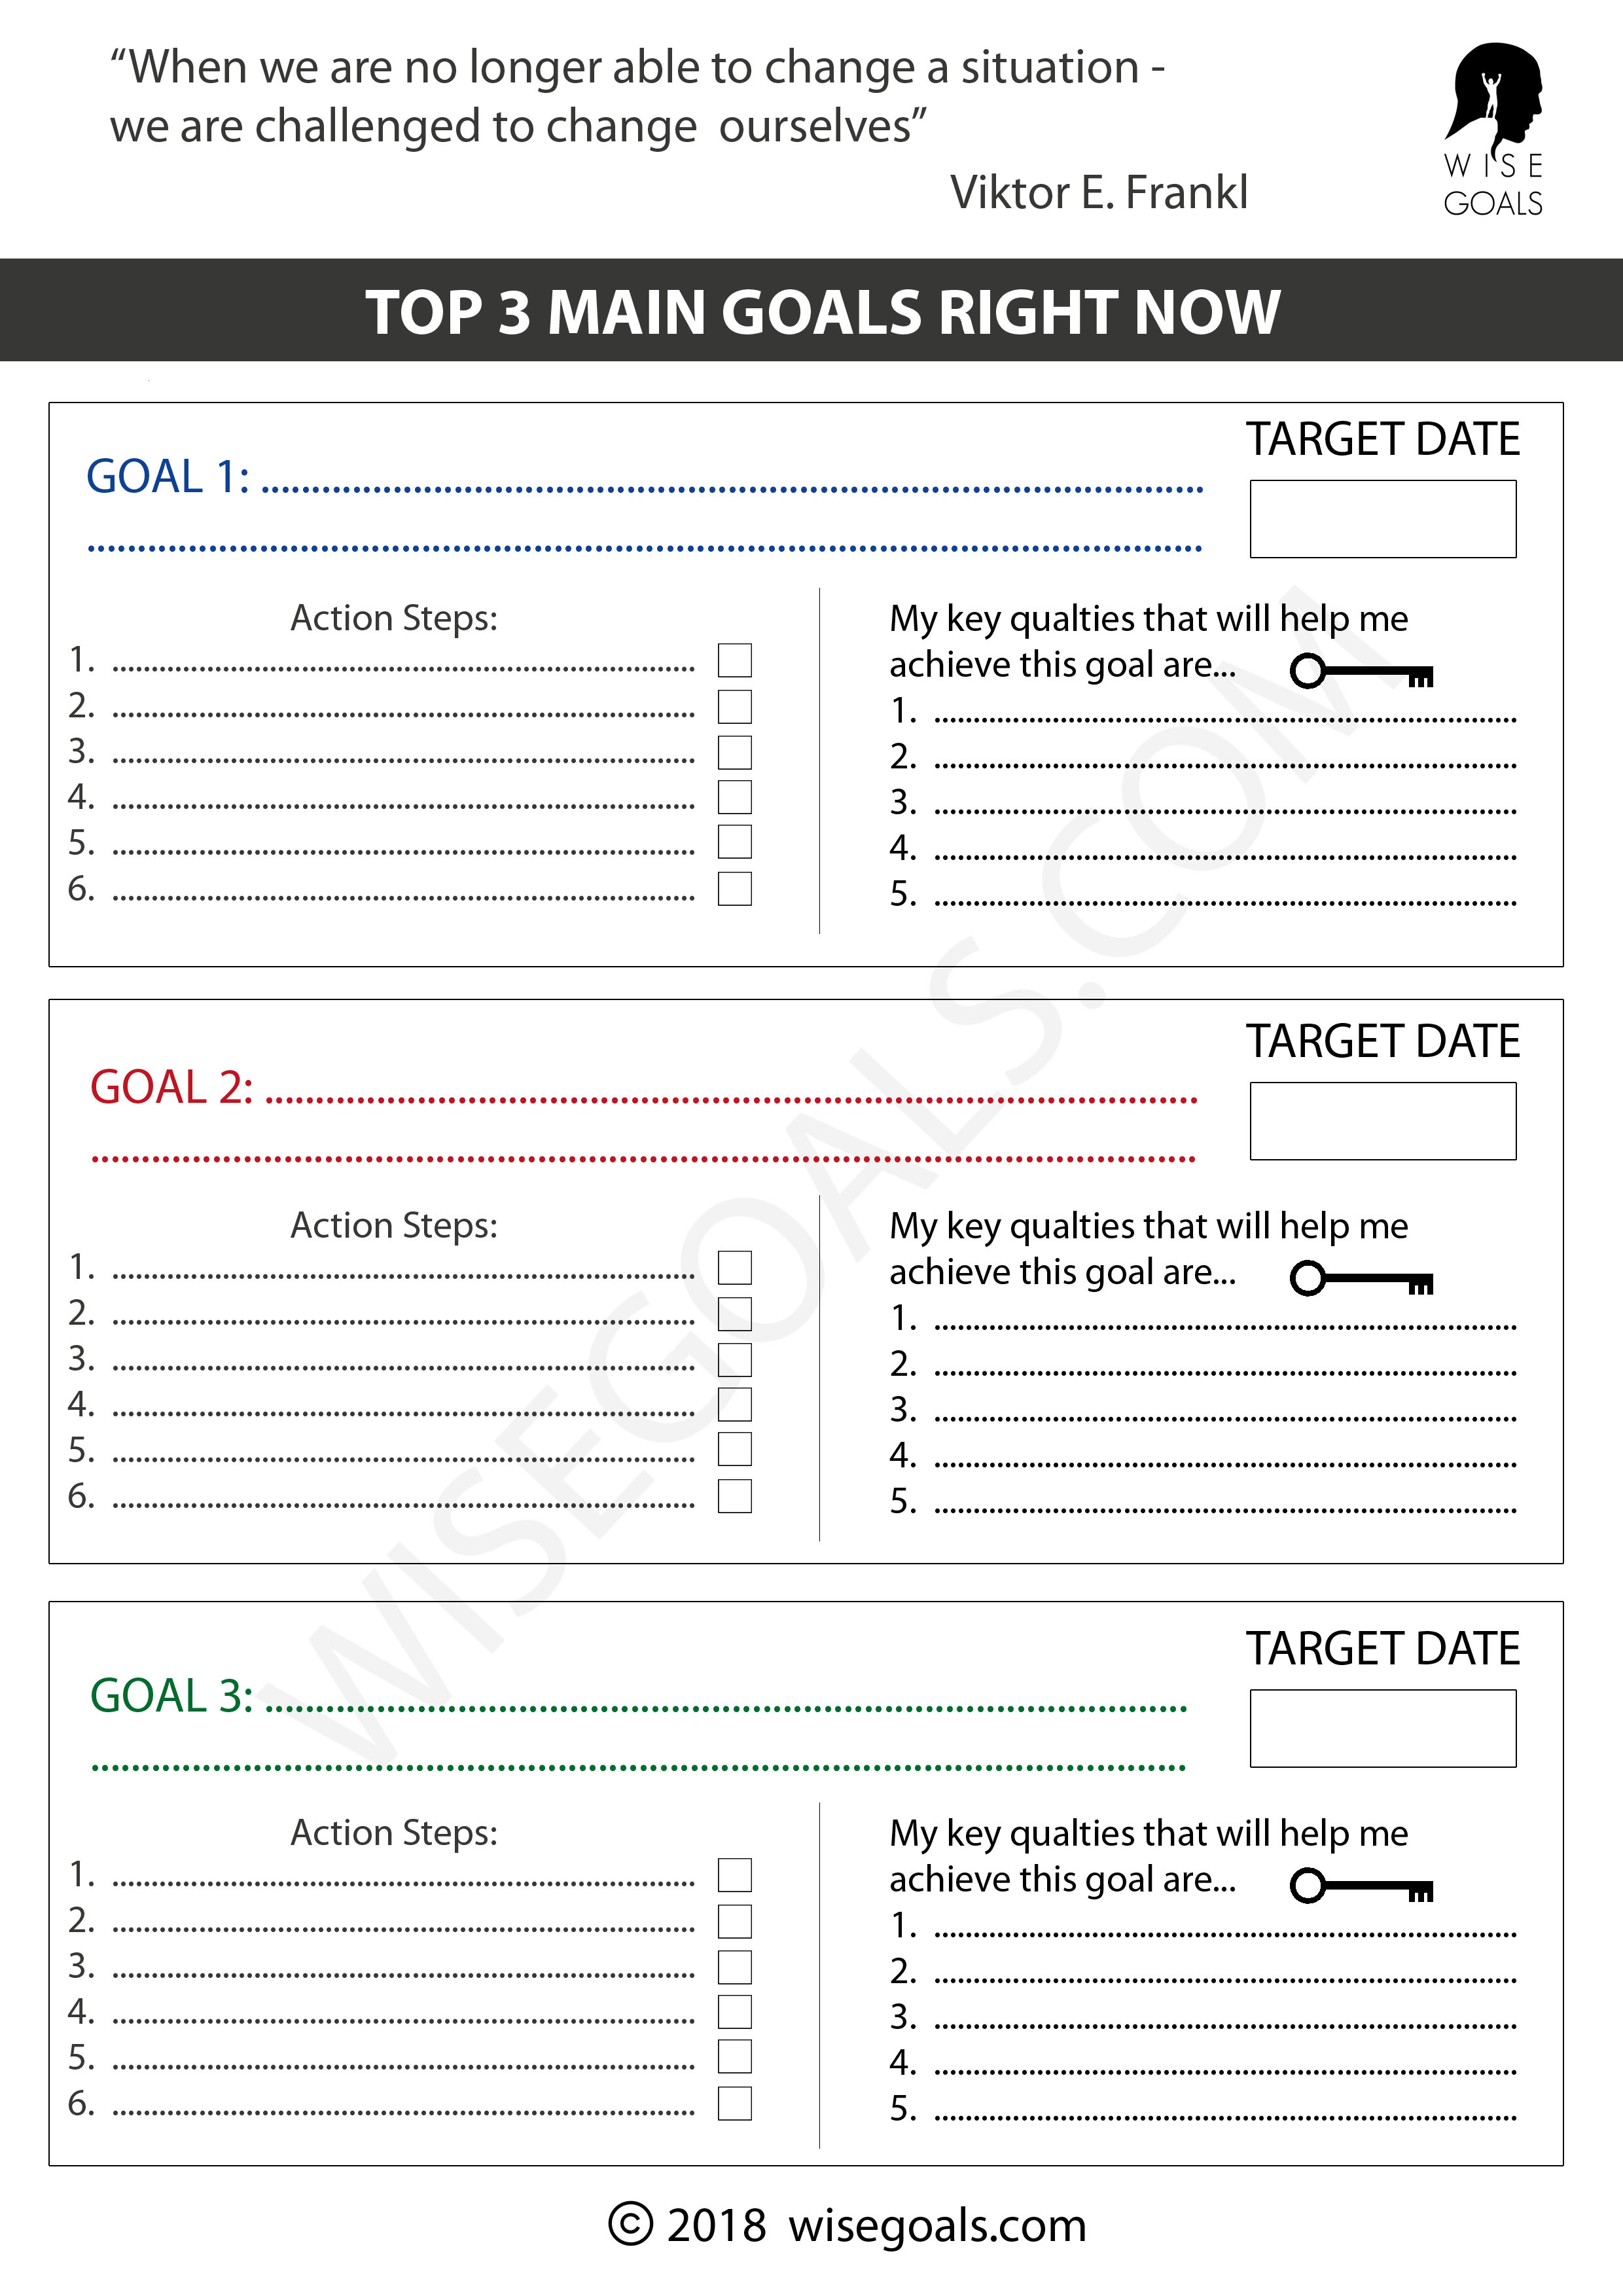 6 Useful Goal Setting Templates And One Step Closer To Achievement